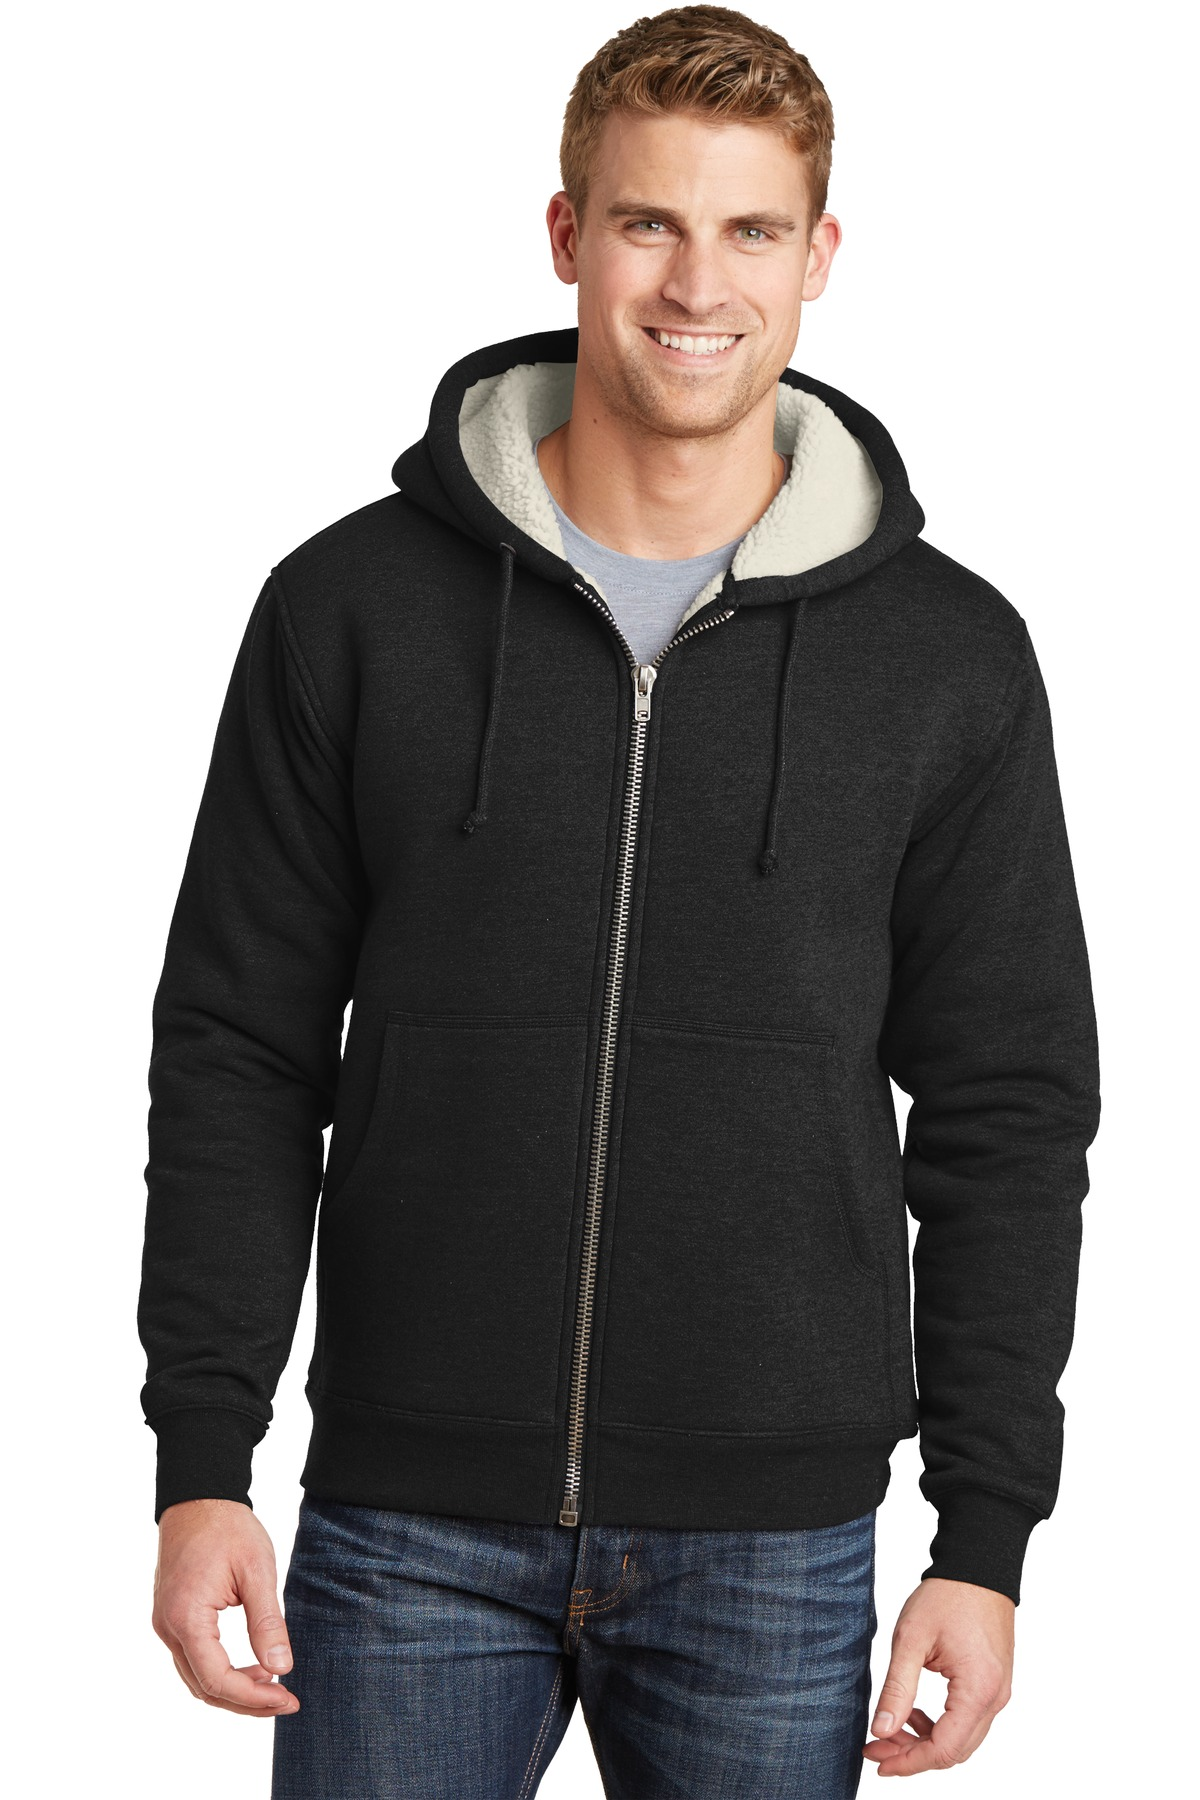 CornerStone  CS625 - Heavyweight Sherpa-Lined Hooded Fleece Jacket